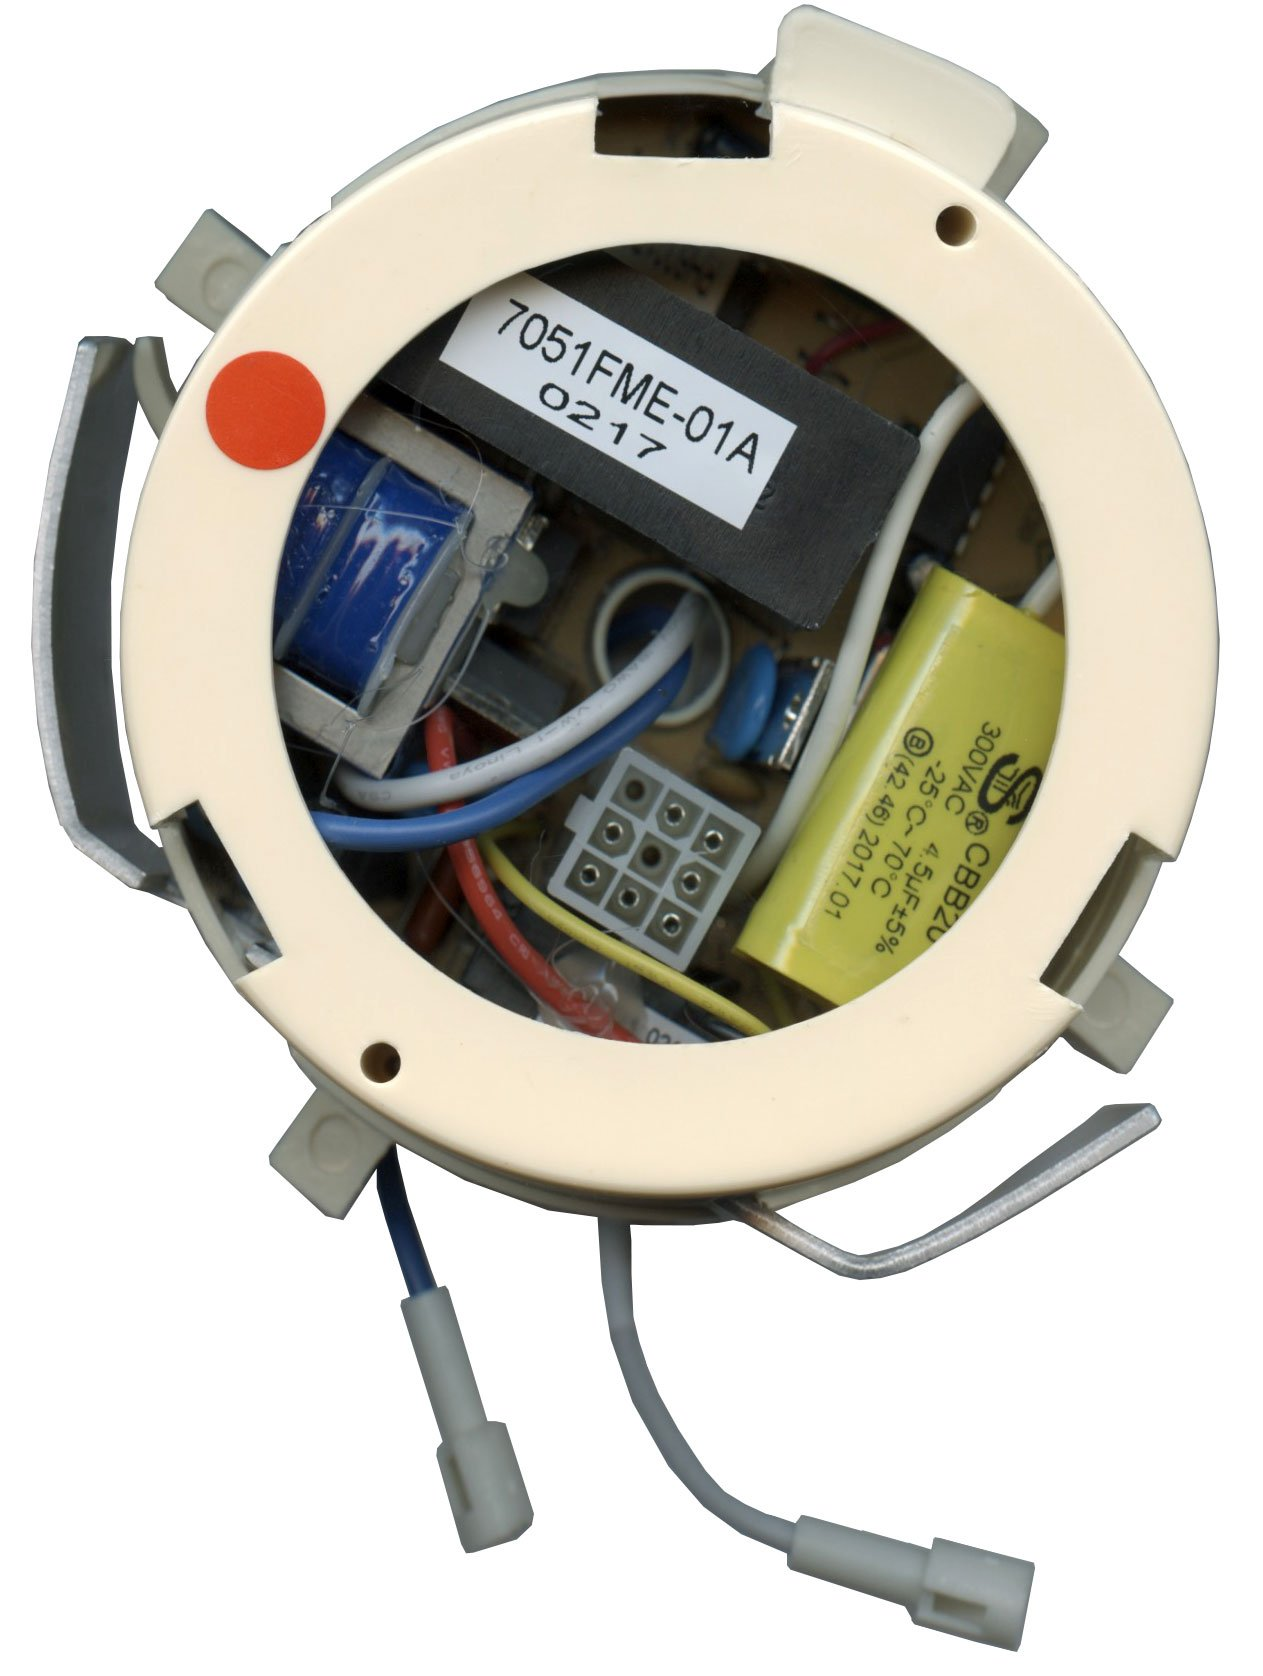 UC7051R Replacement Ceiling Fan Receiver for Hampton Bay Ceiling Fans - UC7051FMRX by Anderic (Image #2)